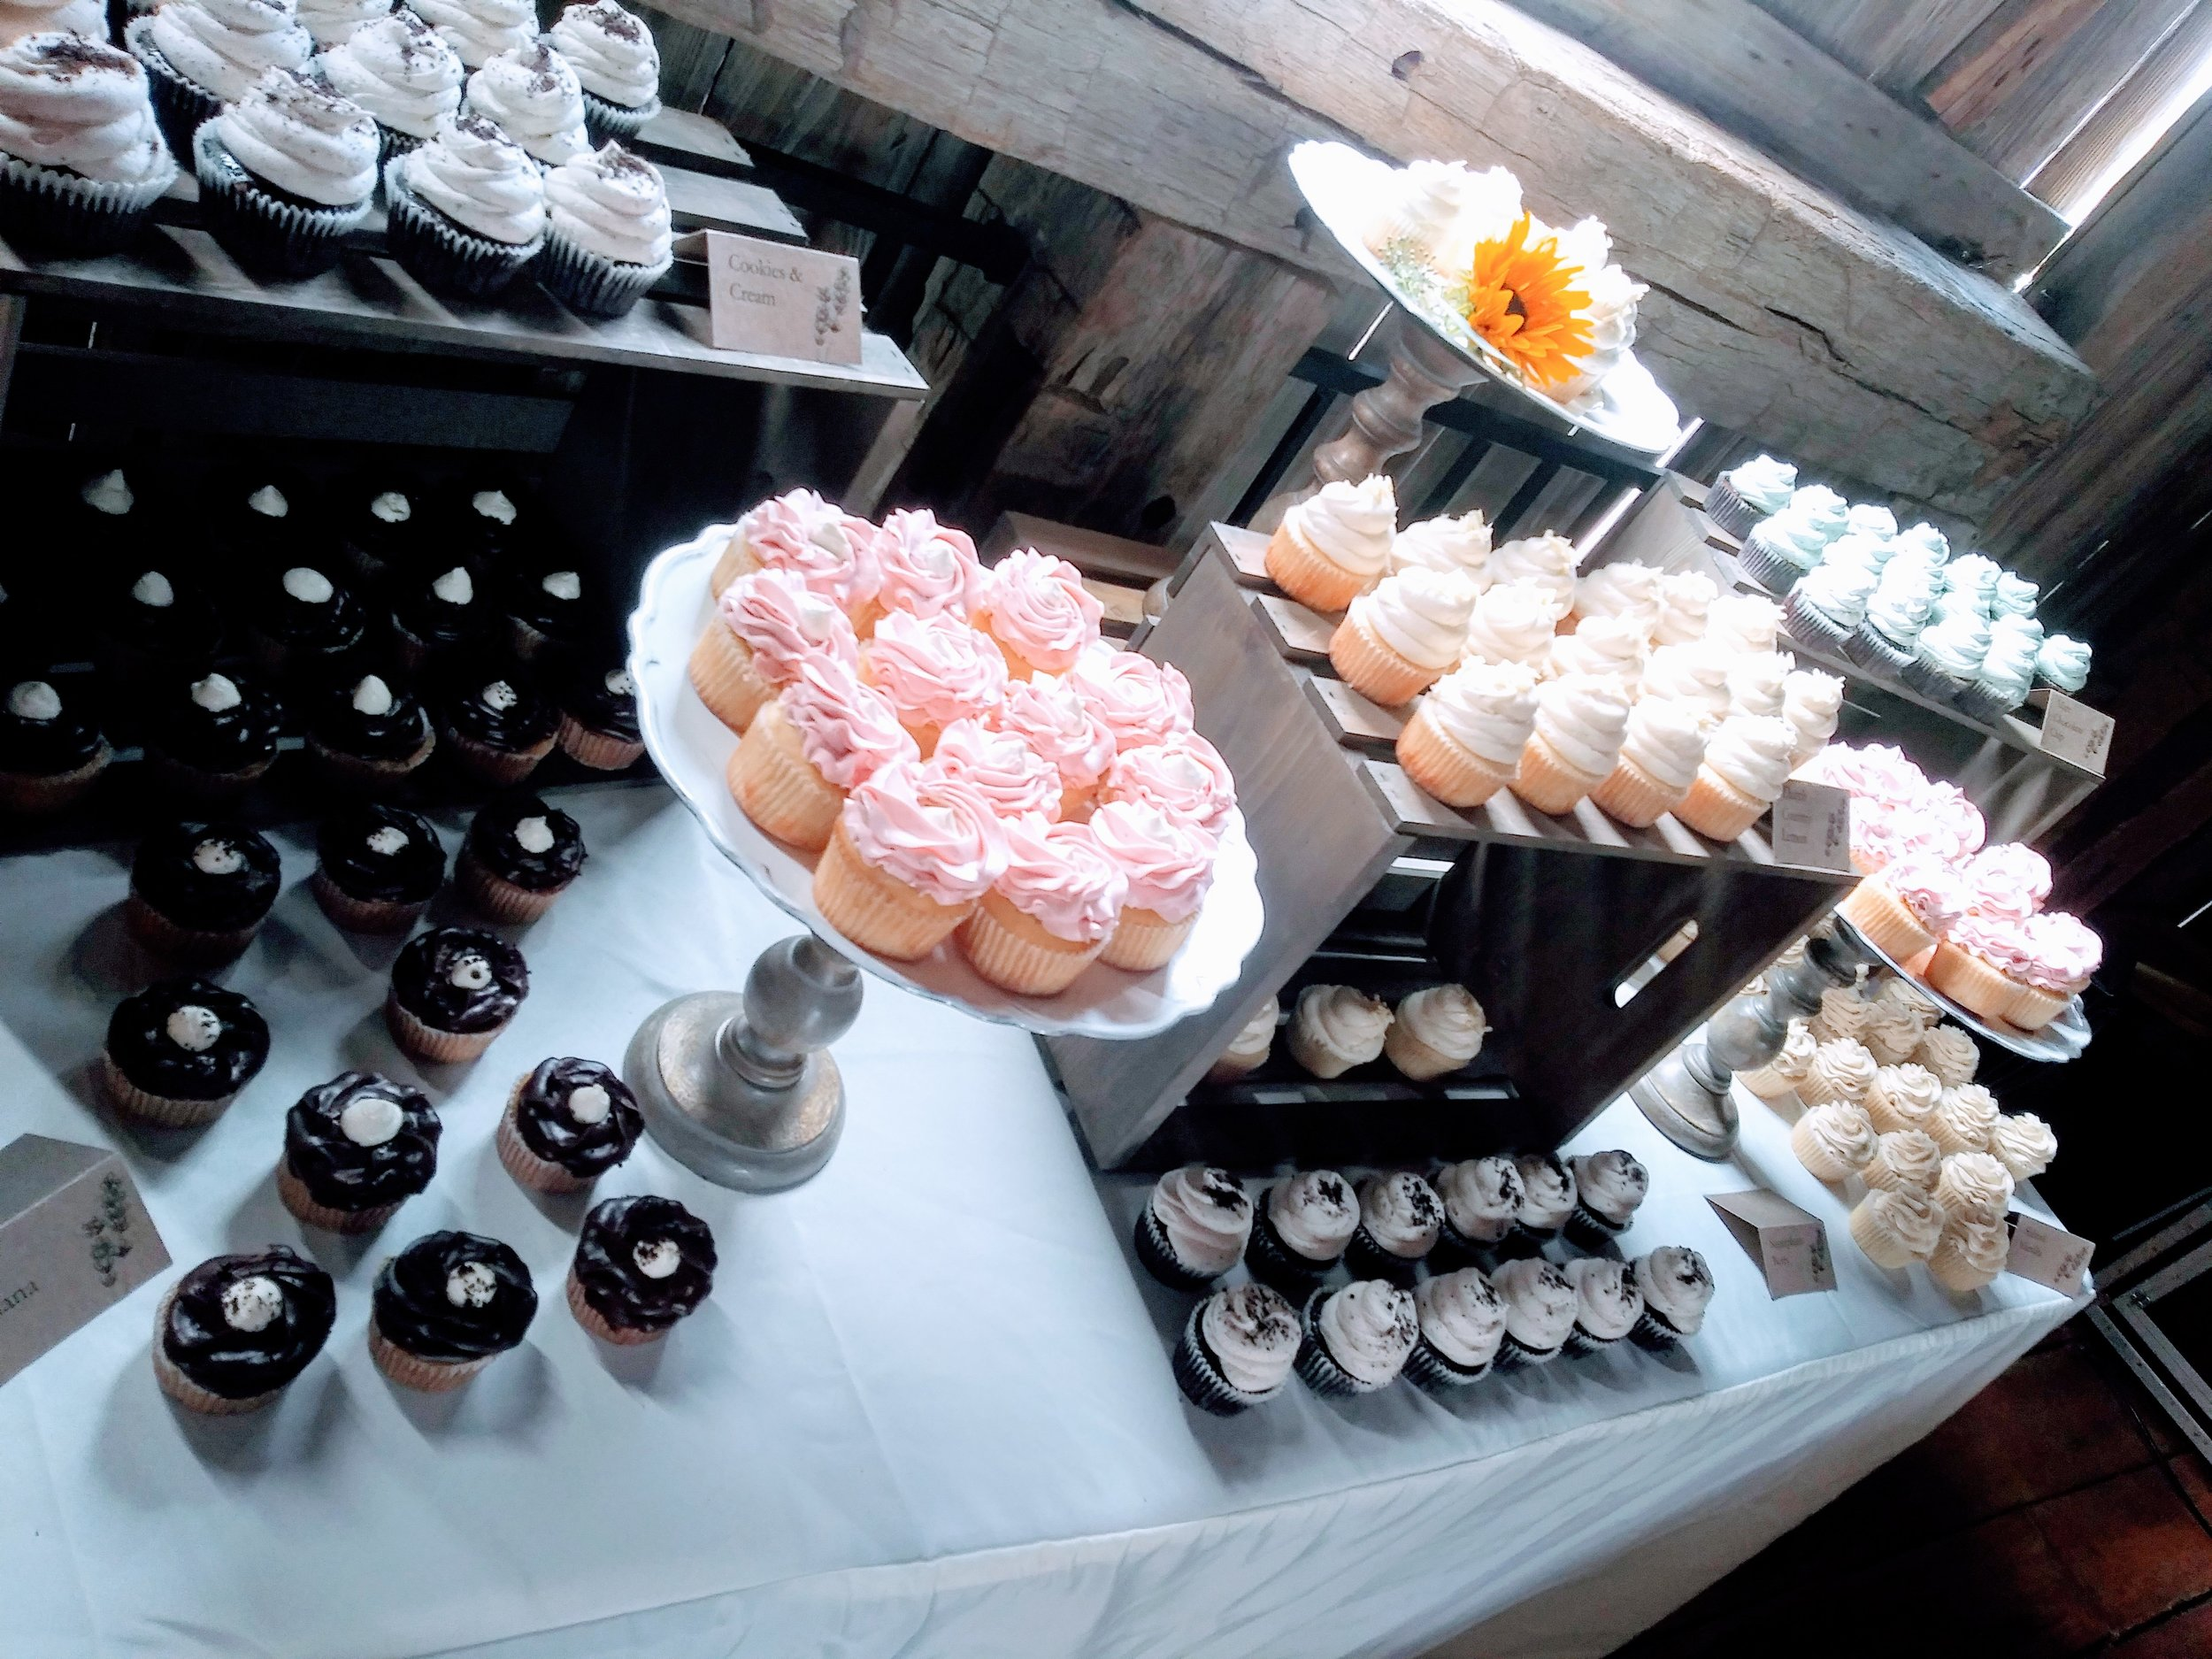 We offer free delivery and set up to any of our preferred reception vendors. - Please call us to inquire about your venue.